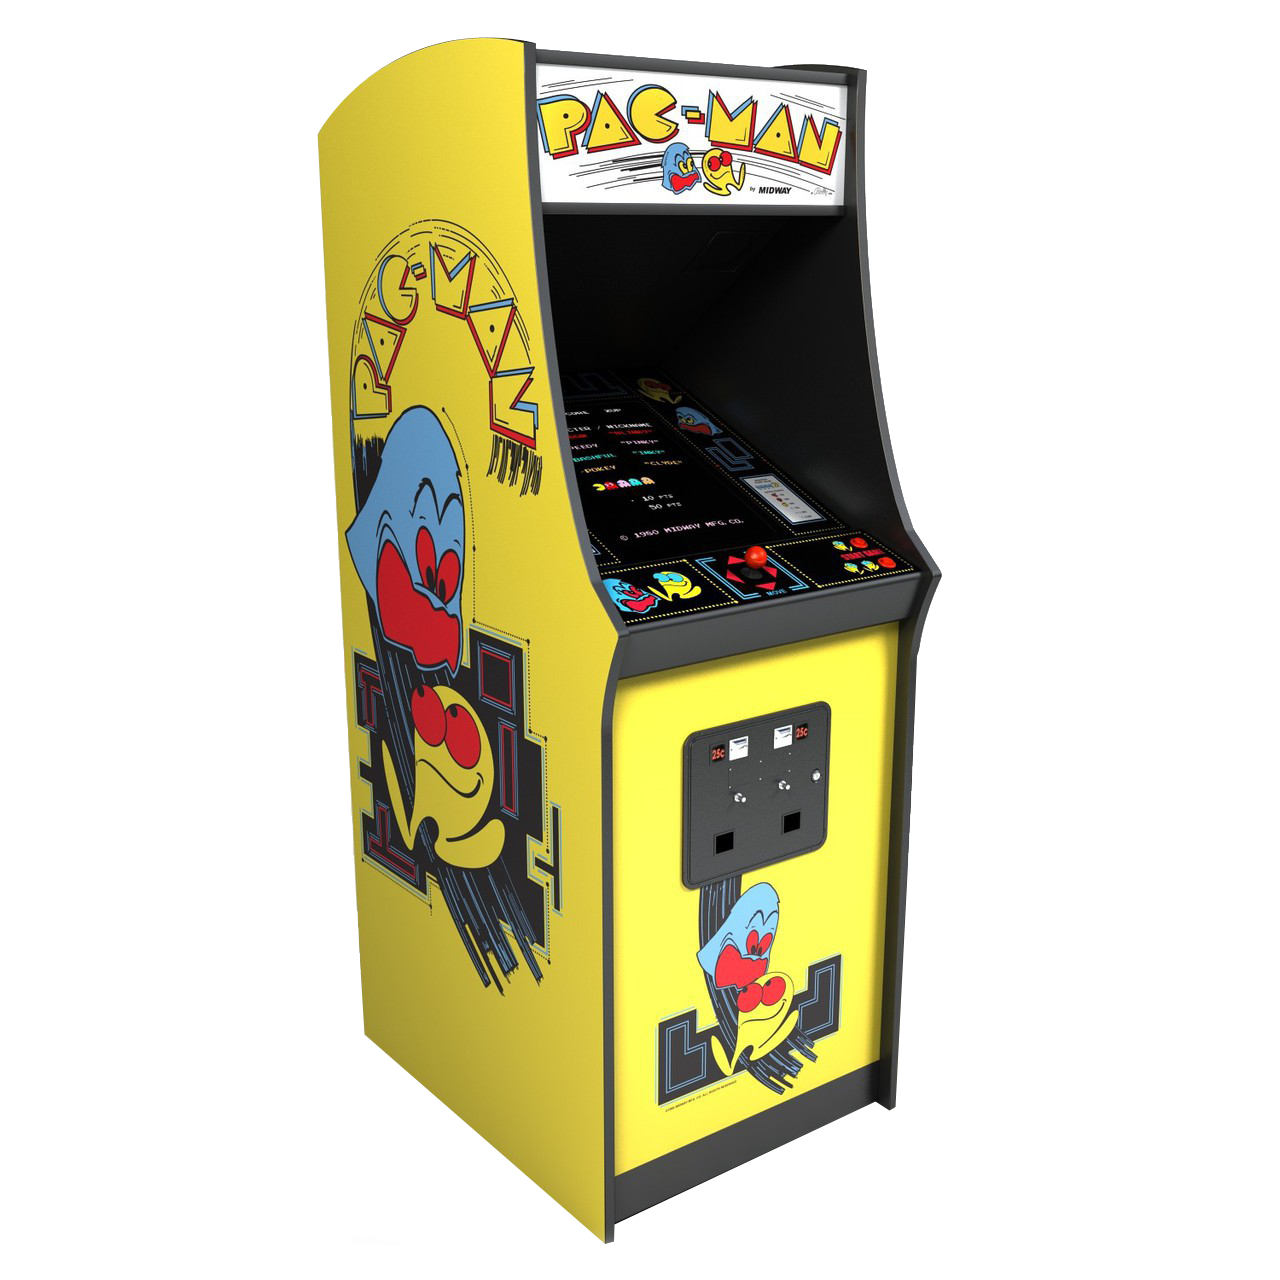 Arcade Images - LaunchBox Games Database